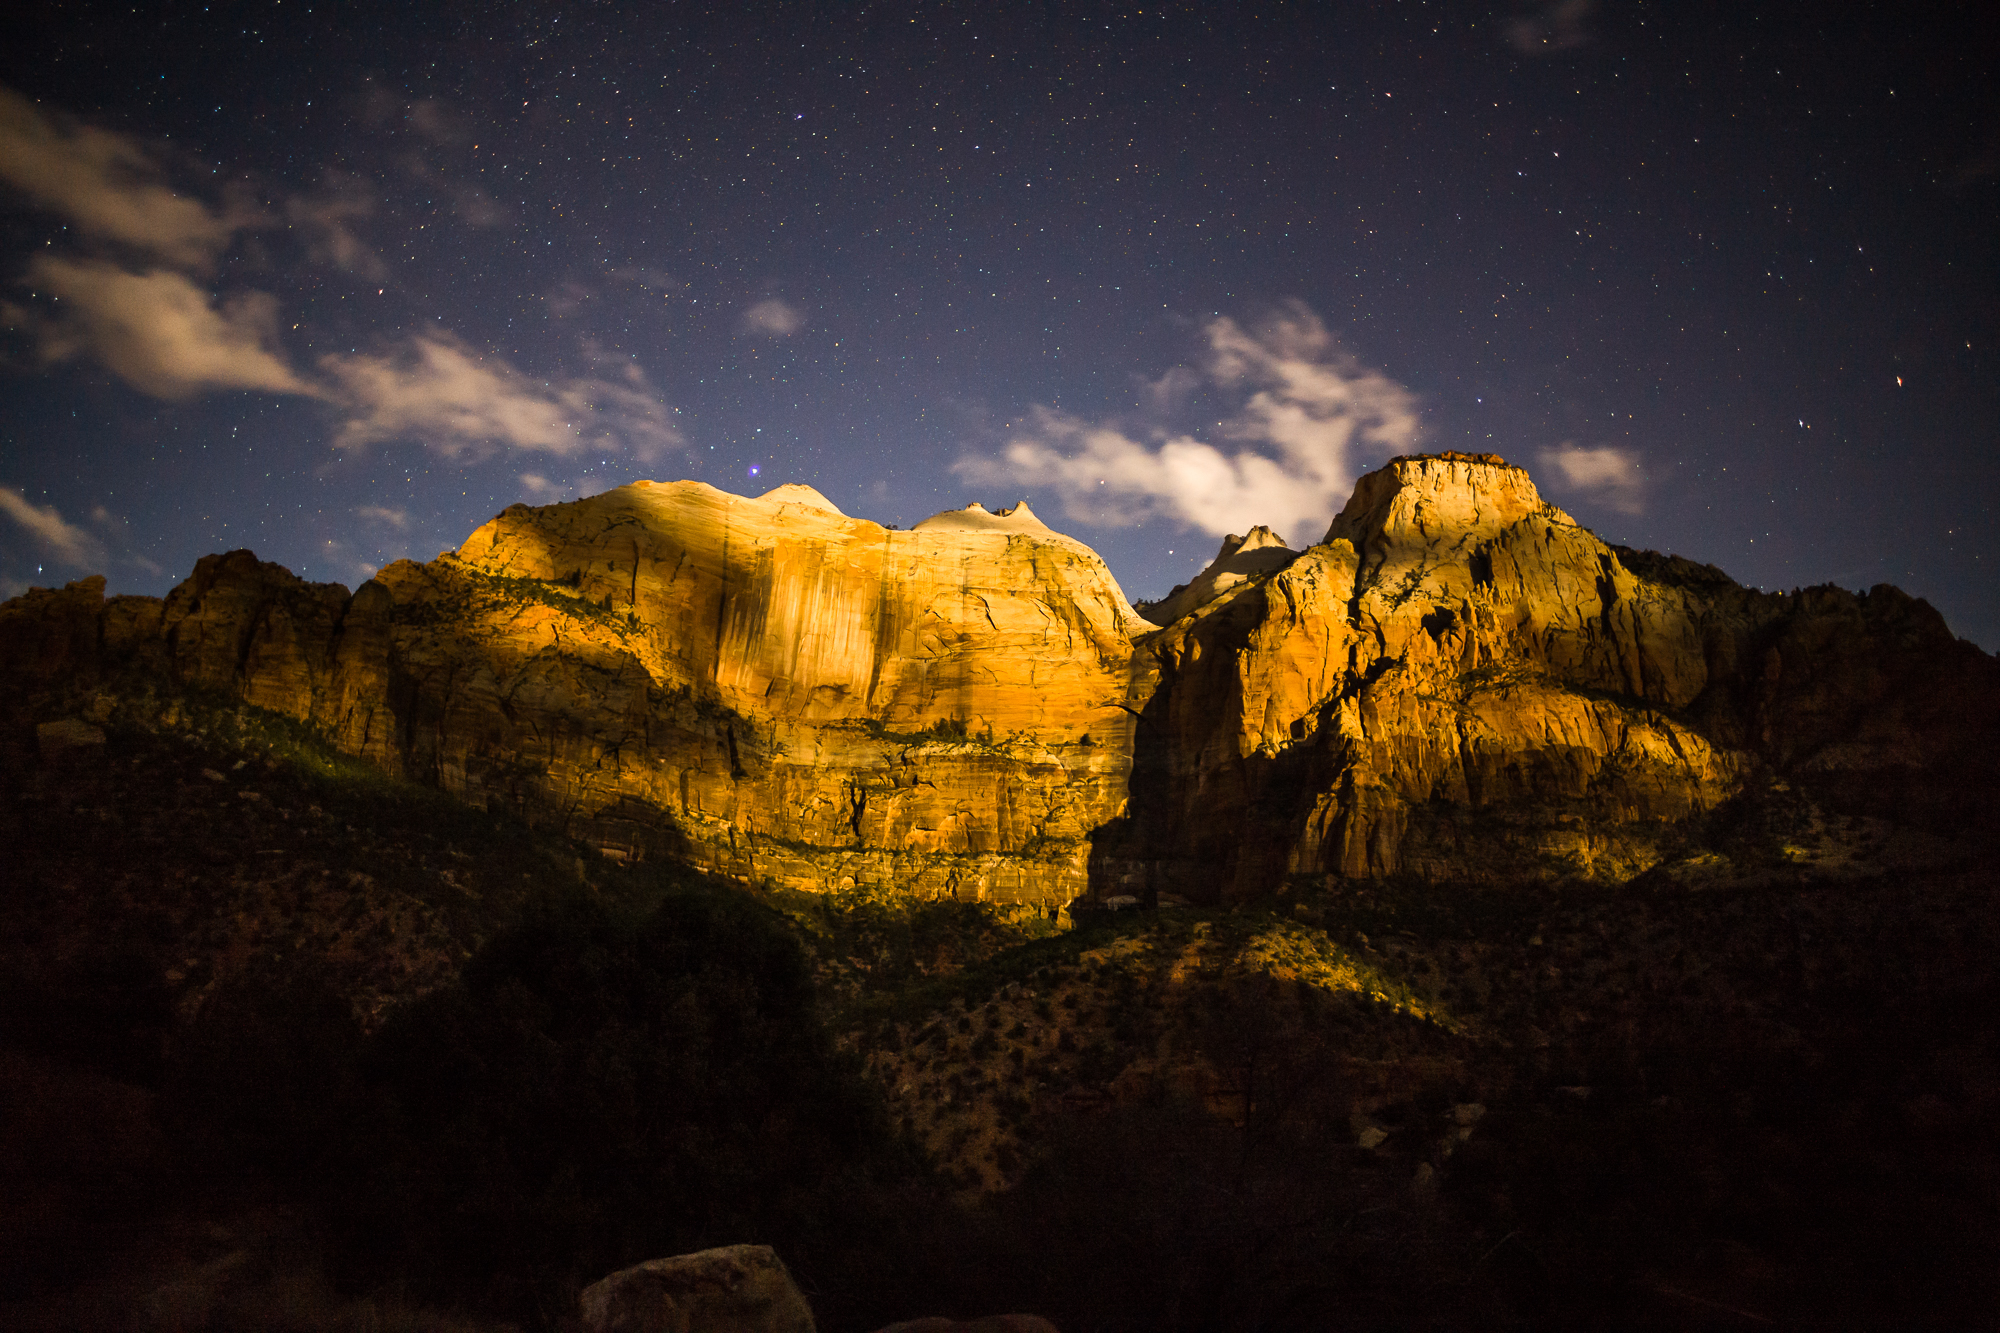 Zion cliffs lit by the moonlight and stars